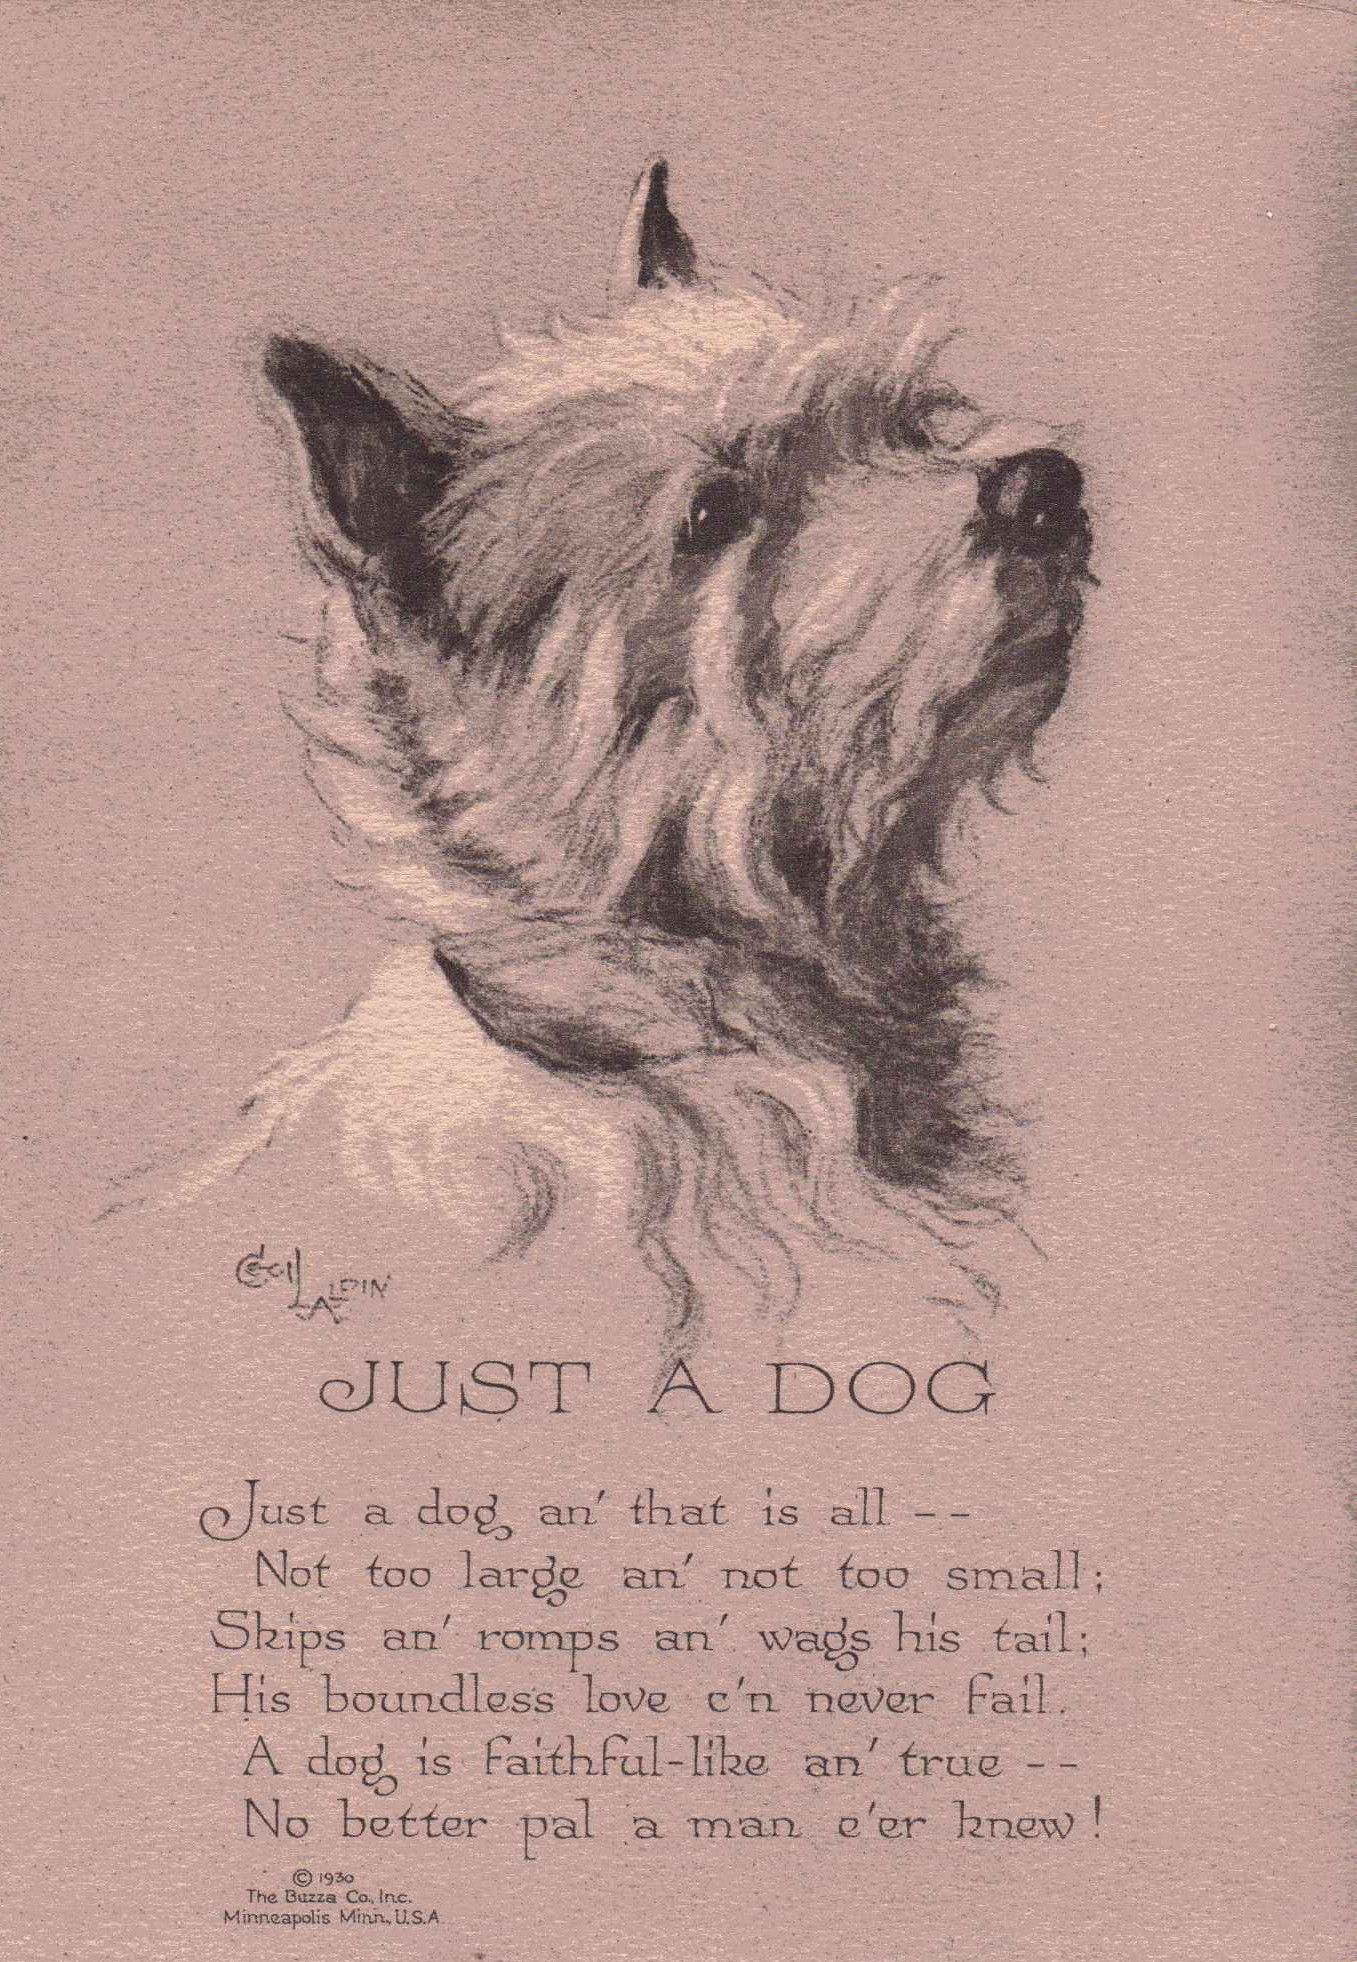 Just a dog poem from the 1930's | My pets and other favorite ...